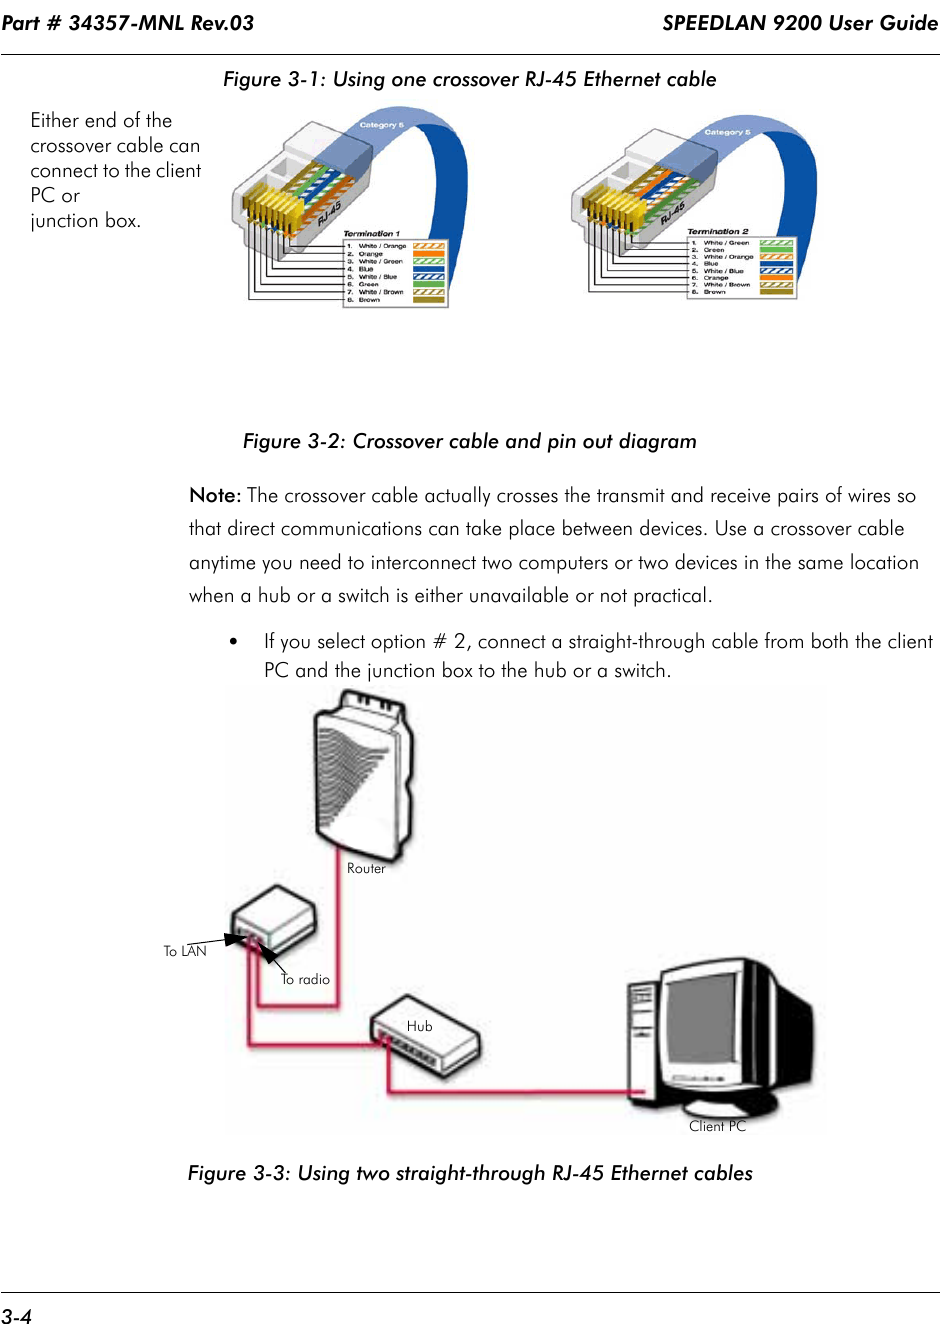 Part # 34357-MNL Rev.03                                                                   SPEEDLAN 9200 User Guide 3-4Figure 3-1: Using one crossover RJ-45 Ethernet cableFigure 3-2: Crossover cable and pin out diagramNote: The crossover cable actually crosses the transmit and receive pairs of wires so that direct communications can take place between devices. Use a crossover cable anytime you need to interconnect two computers or two devices in the same location when a hub or a switch is either unavailable or not practical.•If you select option # 2, connect a straight-through cable from both the client PC and the junction box to the hub or a switch.Figure 3-3: Using two straight-through RJ-45 Ethernet cablesEither end of the crossover cable can connect to the client PC or junction box.To  r a d i oTo L A NClient PCHubRouter